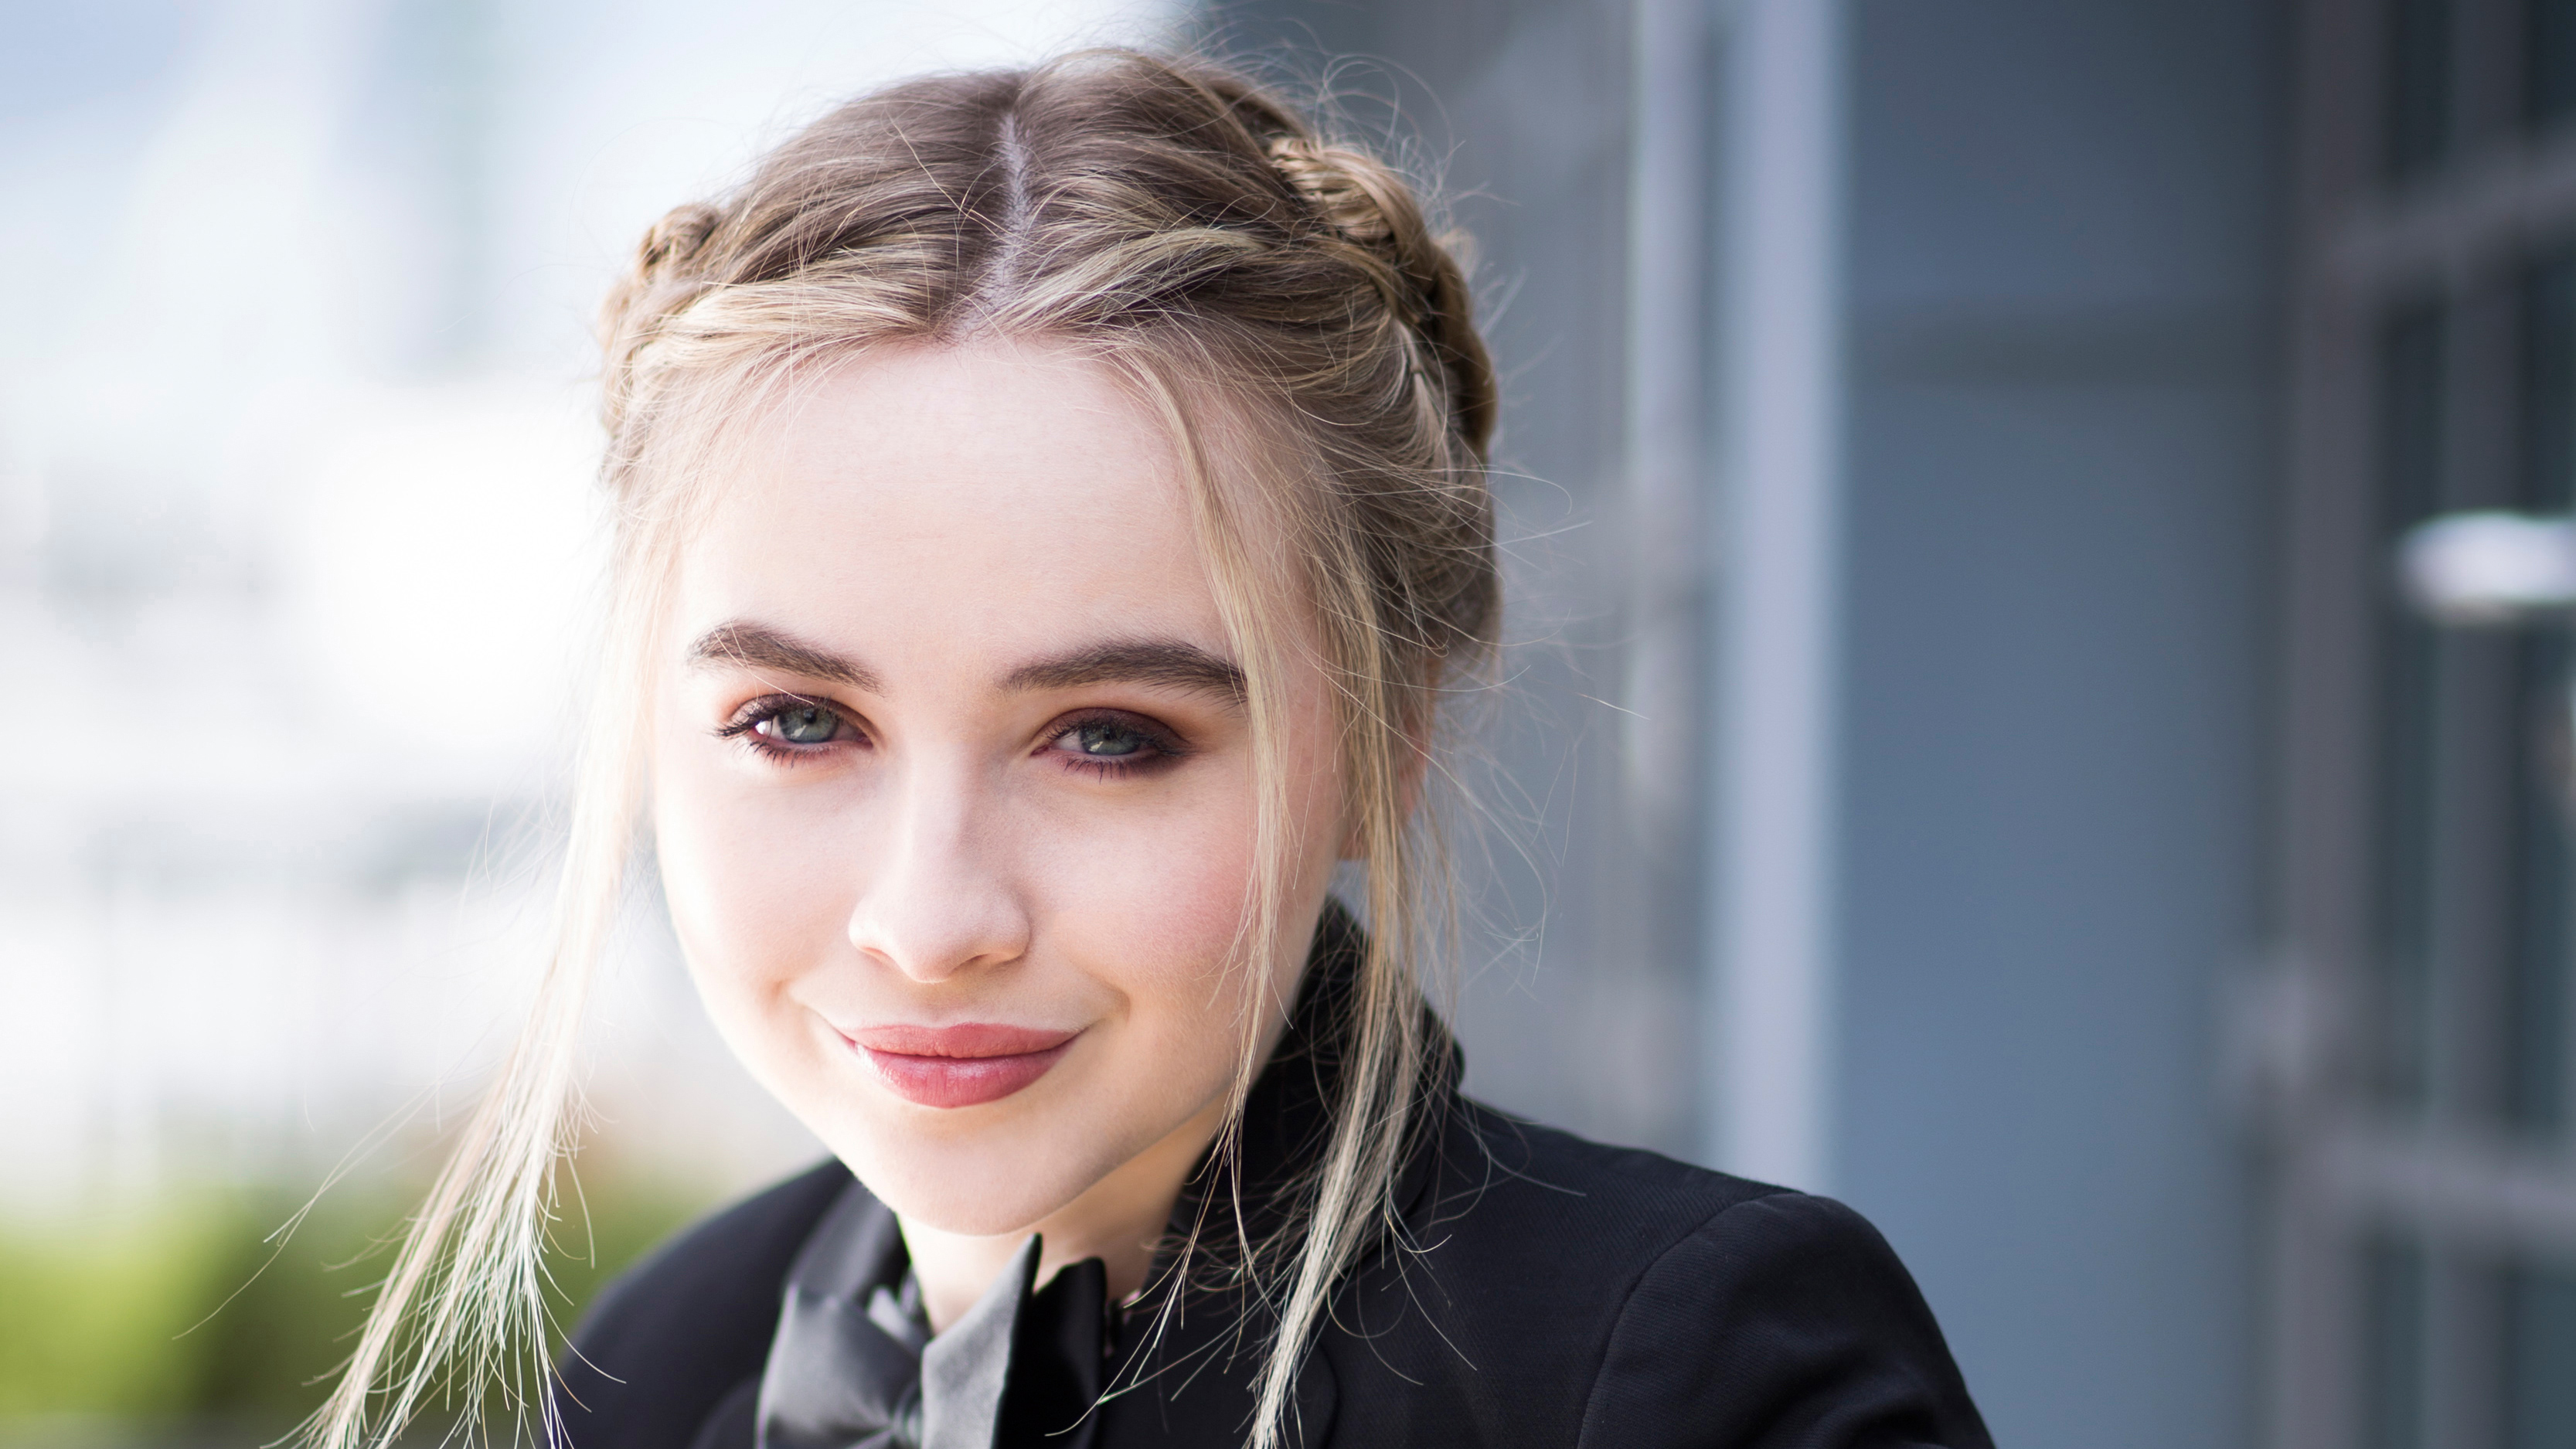 1920x1080 cute sabrina carpenter laptop full hd 1080p hd - Sabrina carpenter hd wallpaper ...